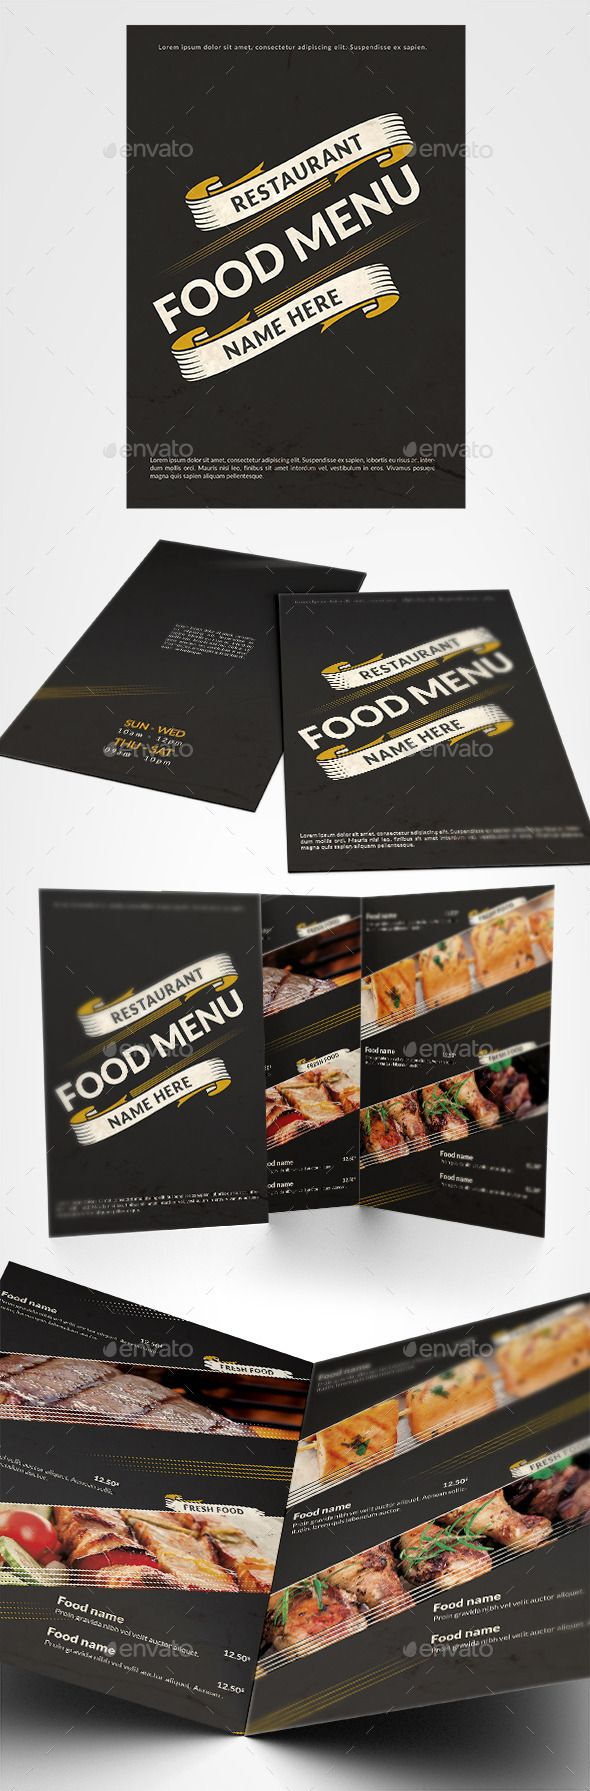 Restaurant Food Menu by D-S The file is 16.7711.9 inches with 0.12 in bleeds, A4 one page, CMYK whit 300DPIThe PSD files are very well organised and layers na